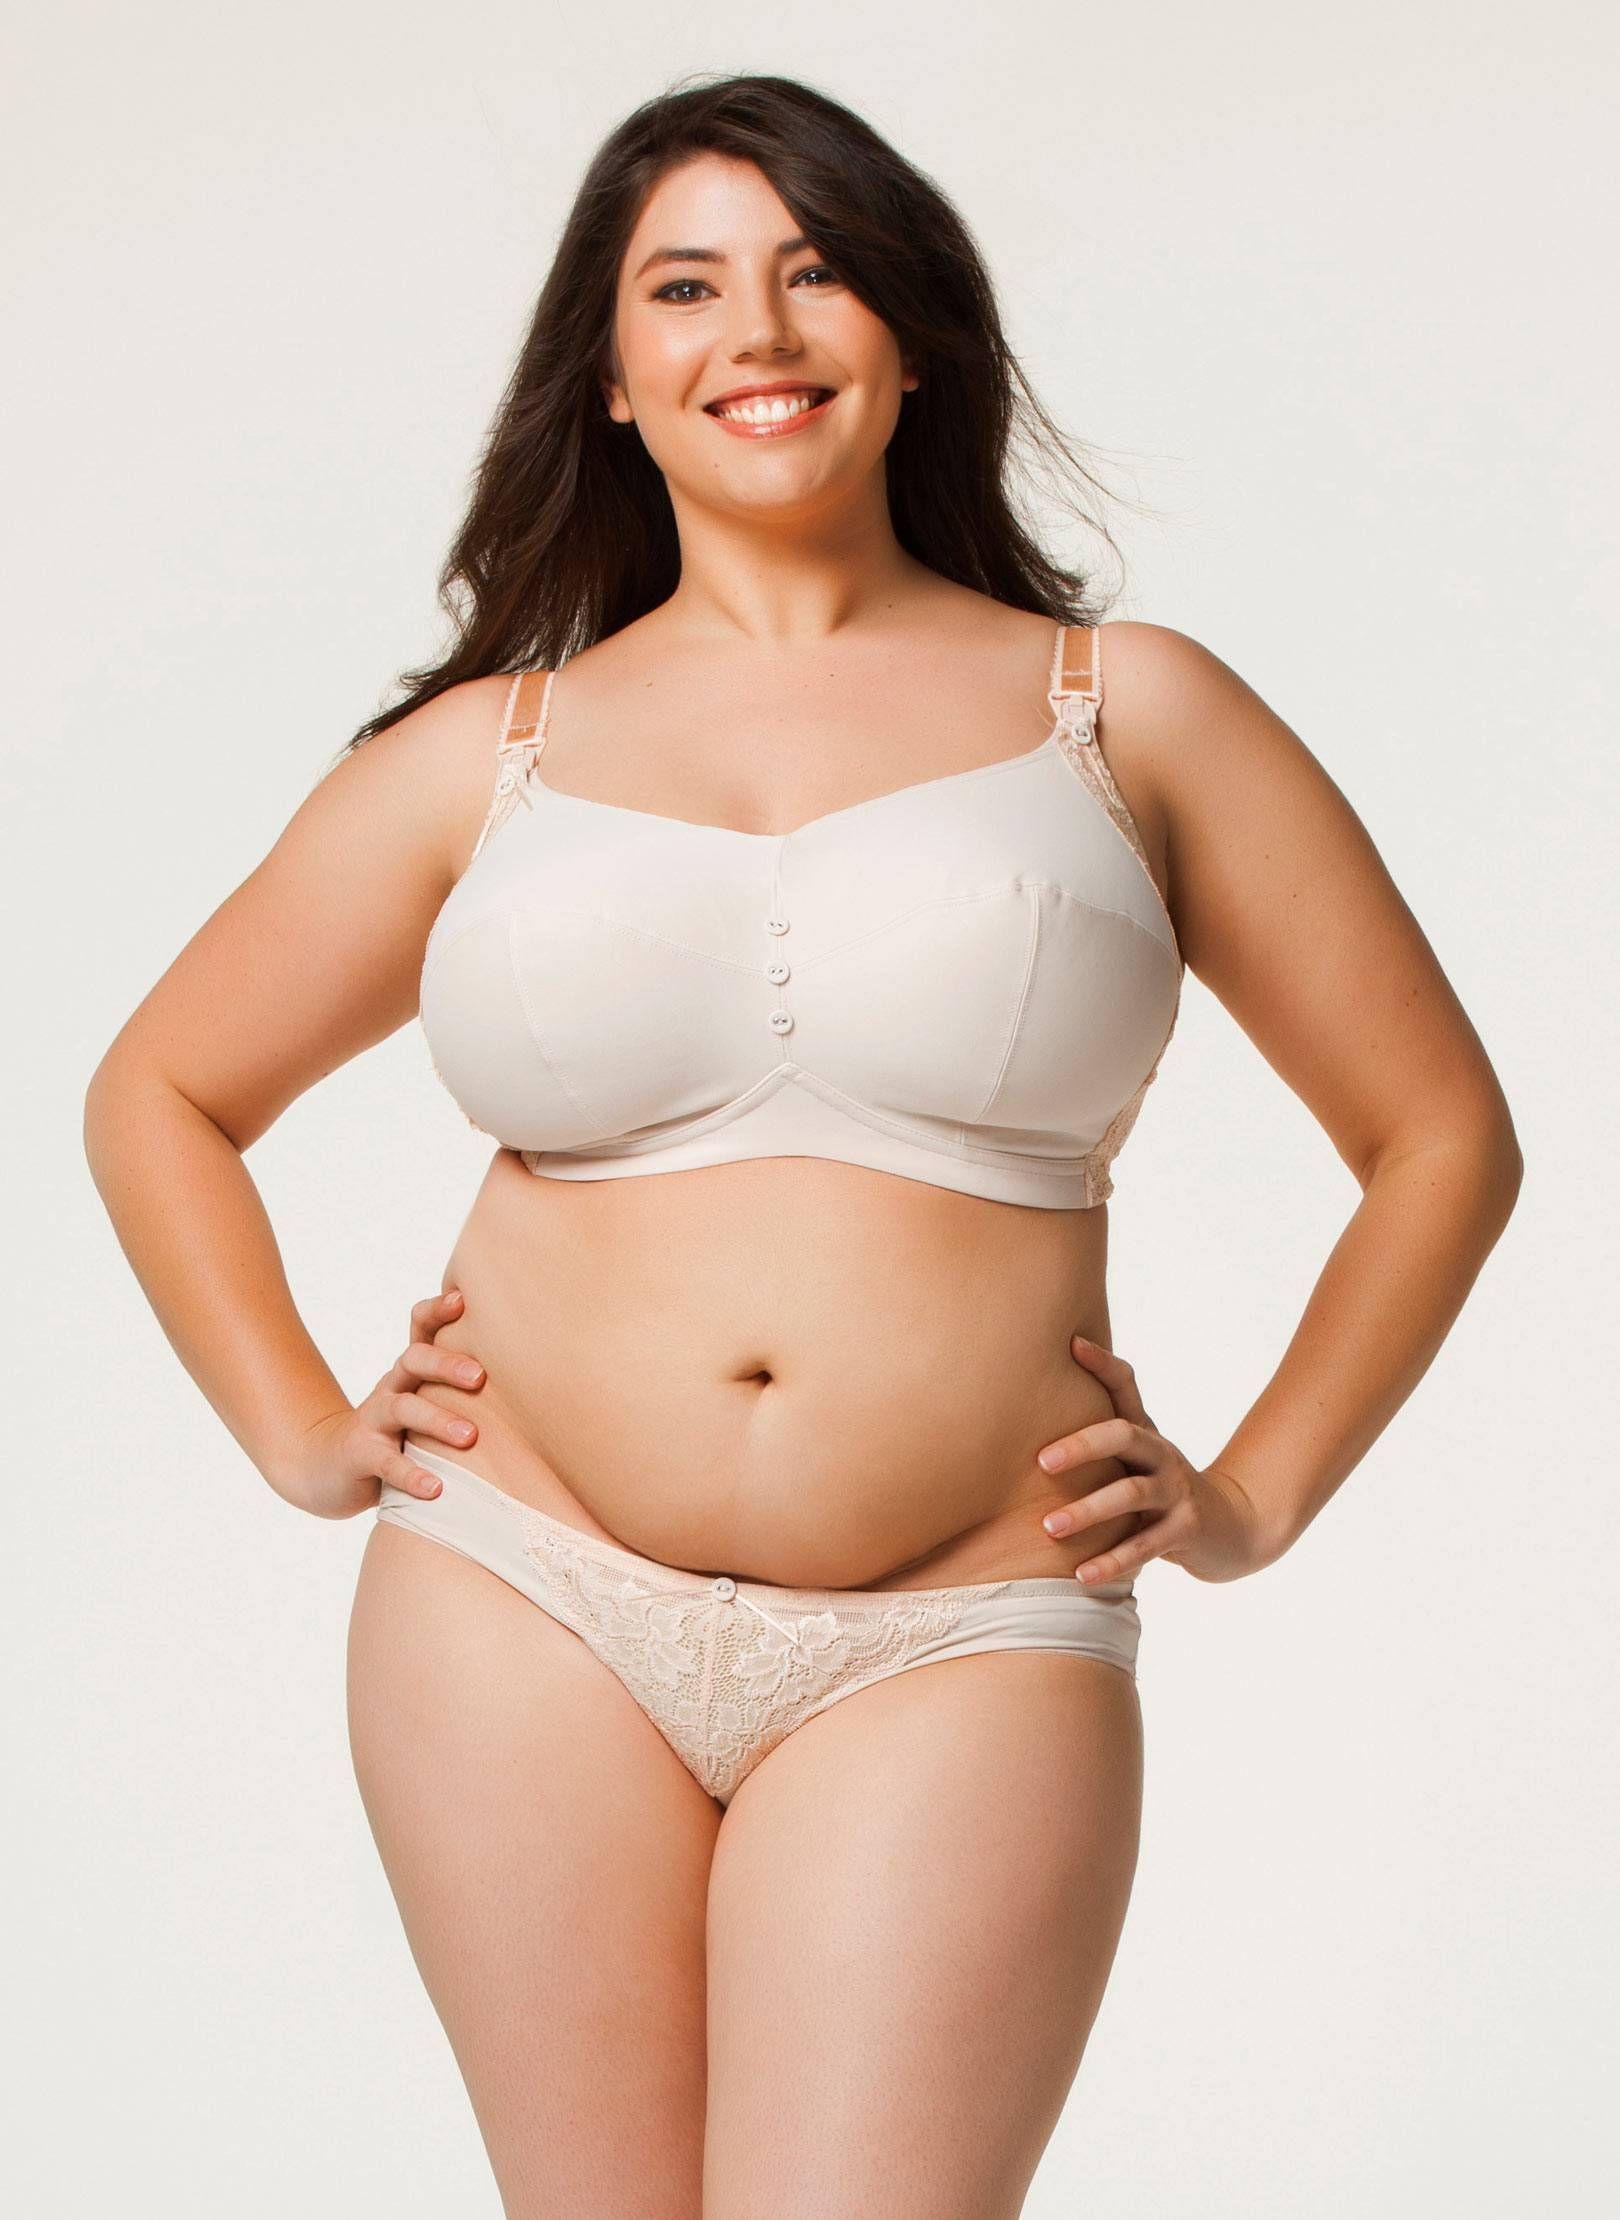 Plus size british lingerie